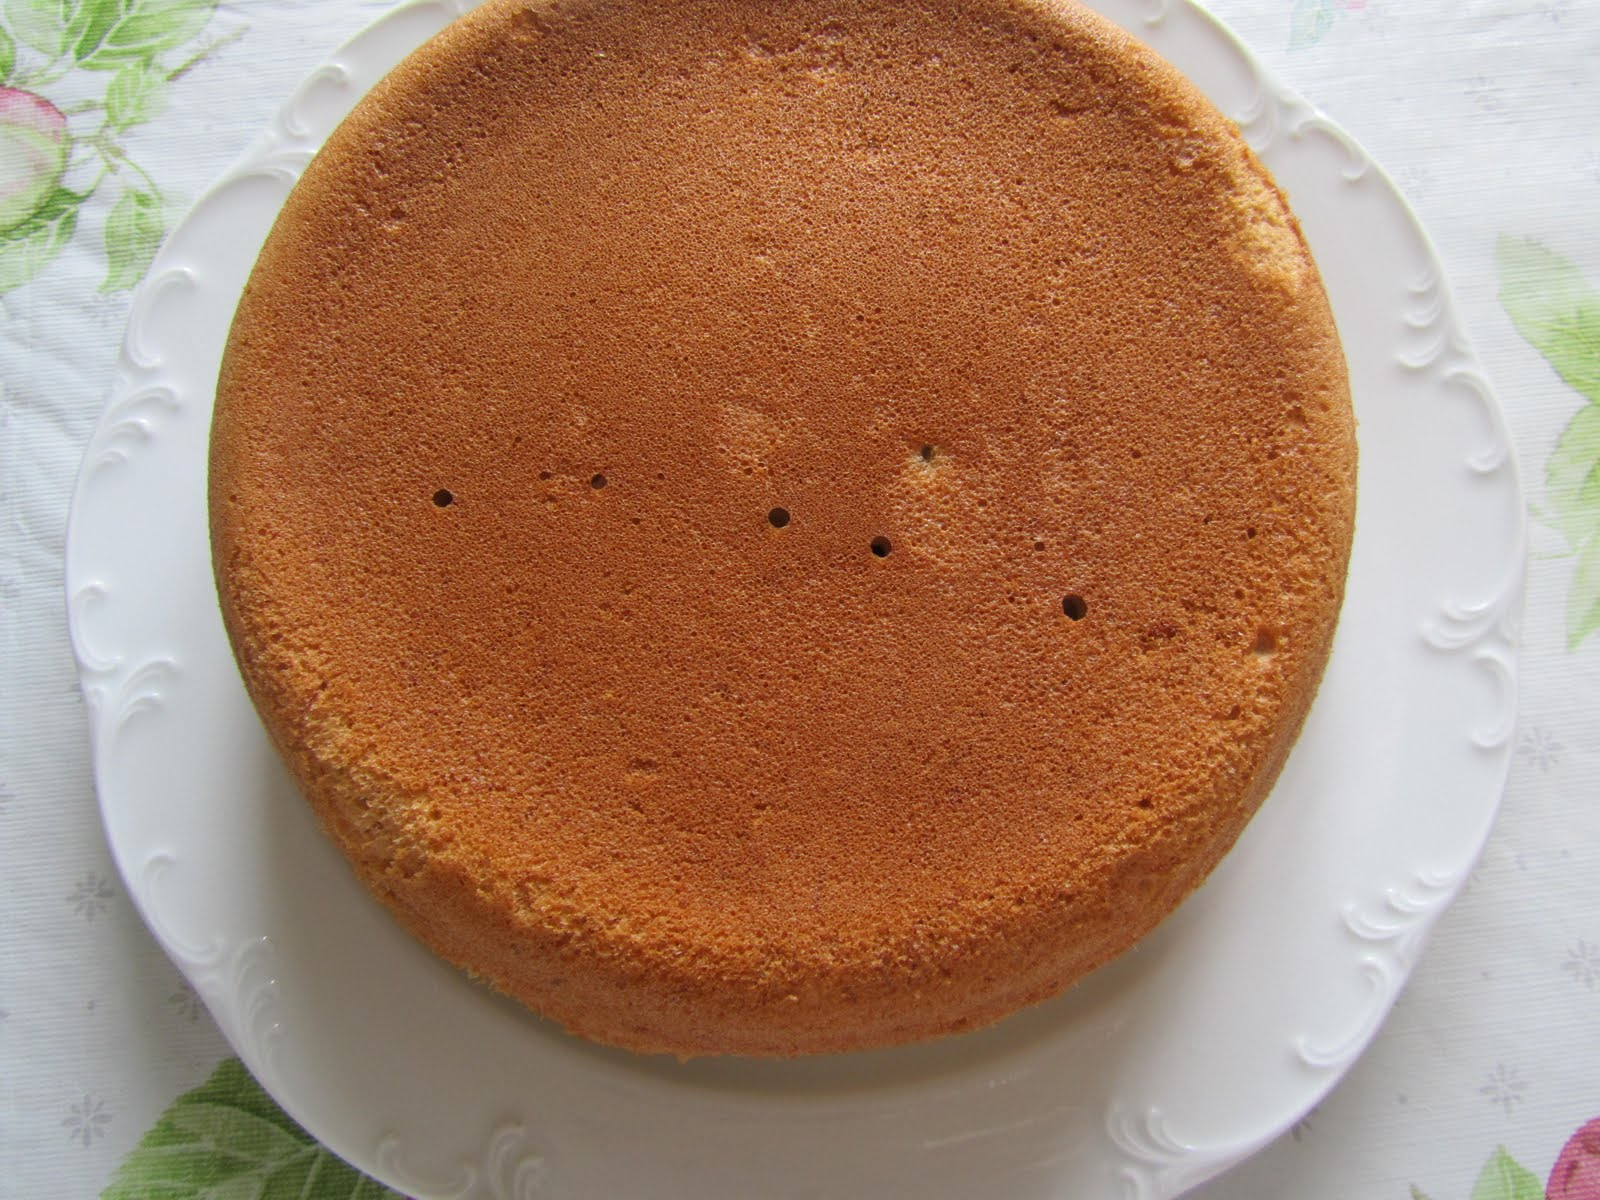 Cake Recipe In A Rice Cooker: Reflections In My Notecook: Banana Cake In 5-Cup Rice Cooker